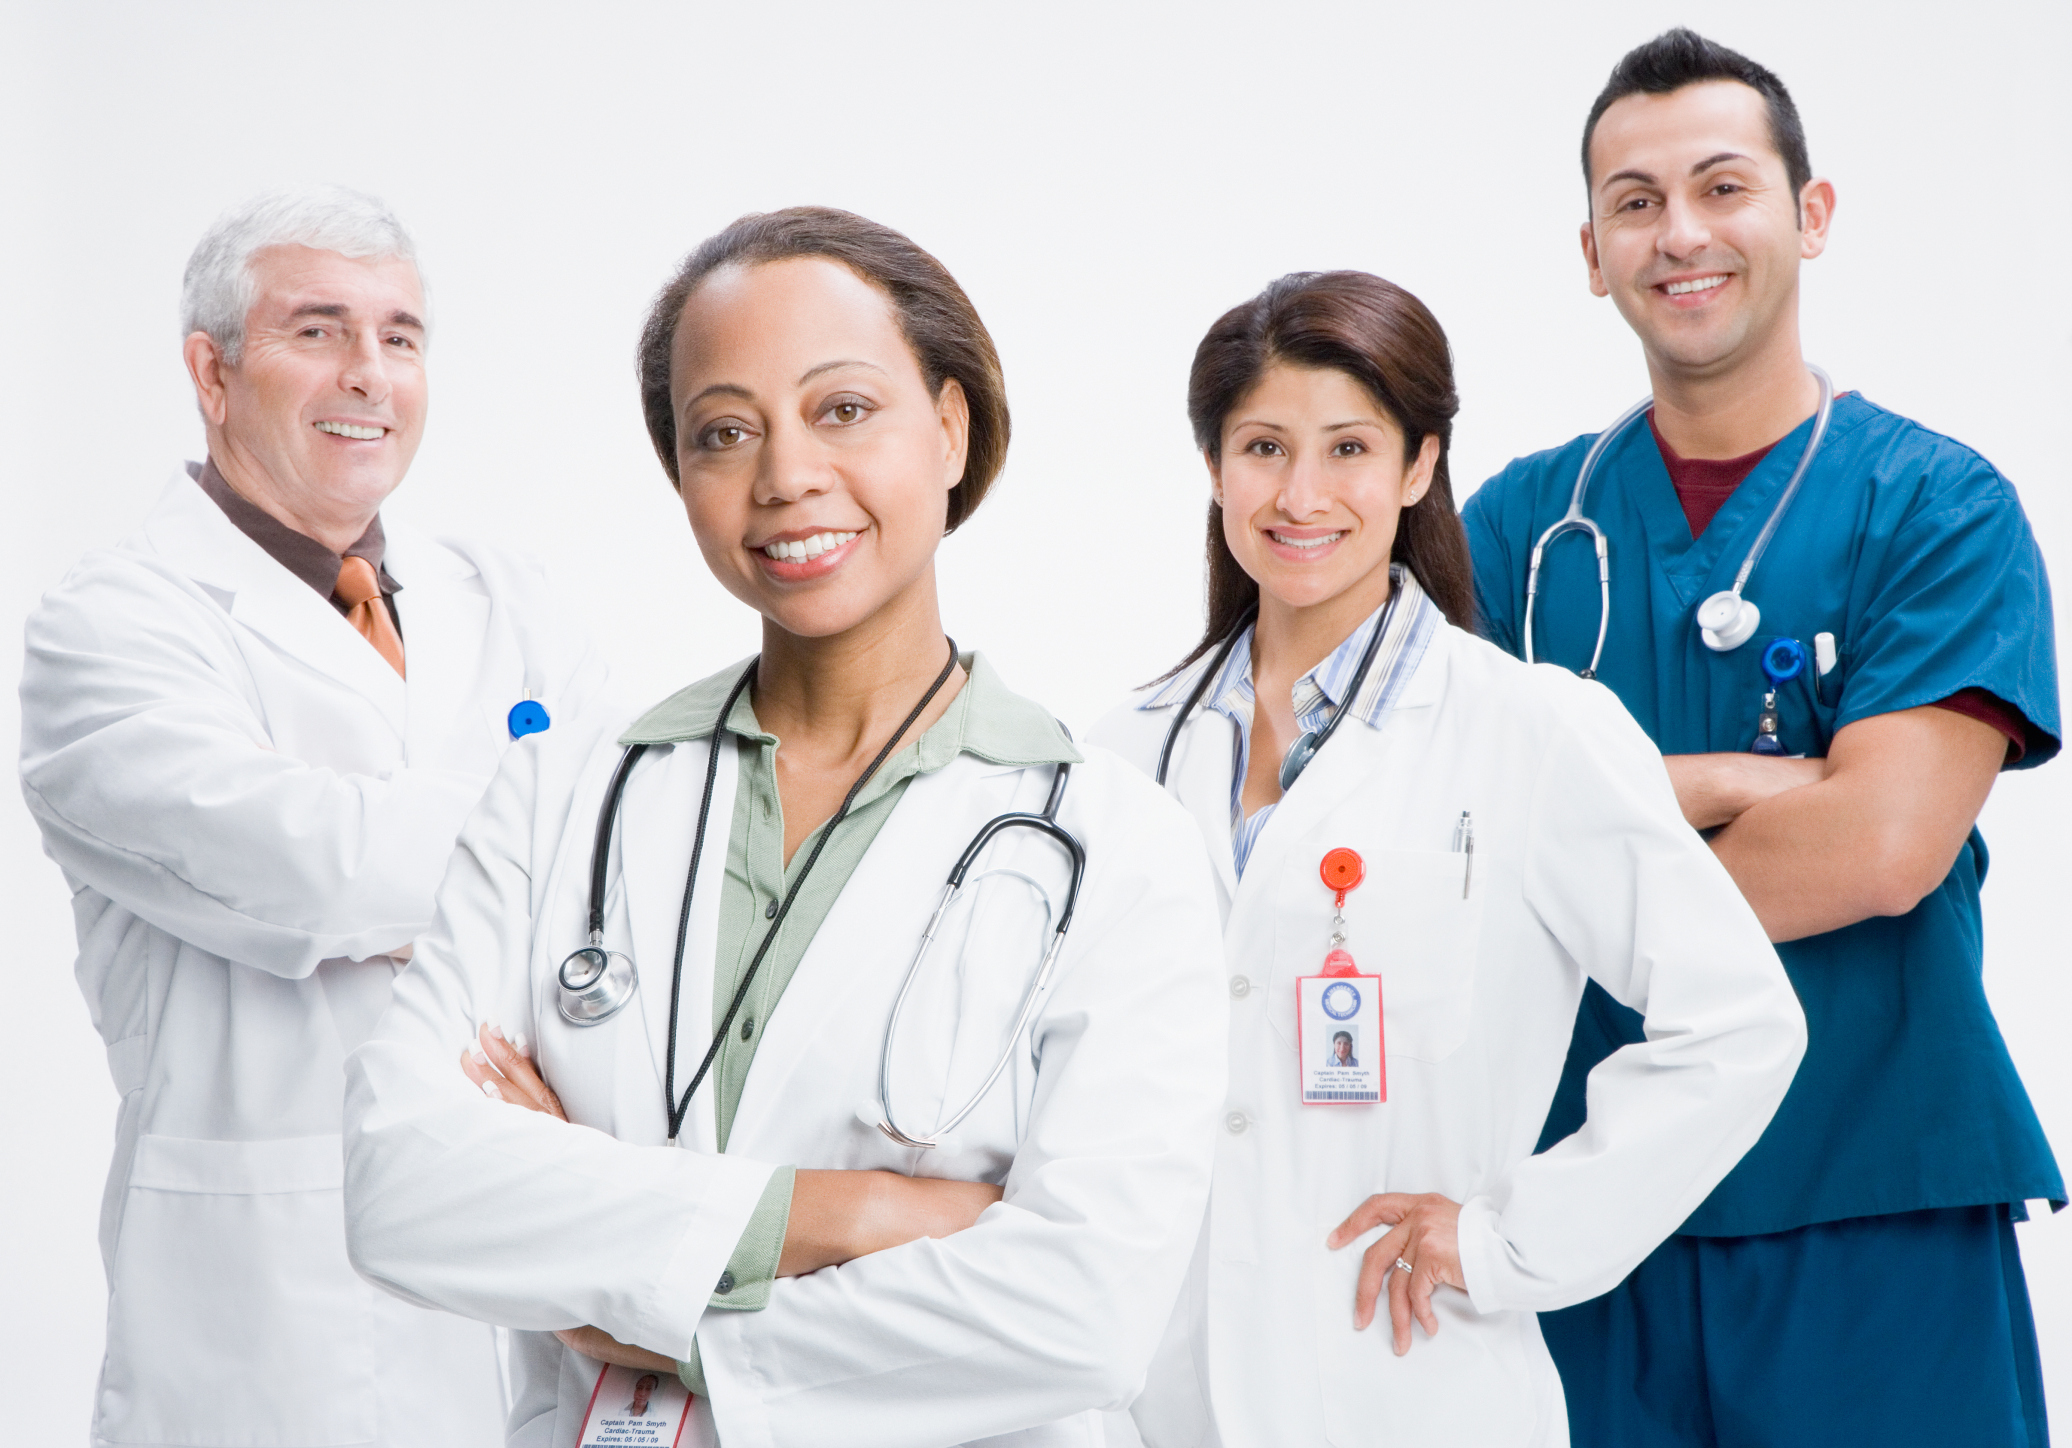 Medical Office Dress Code Policy | Career Trend